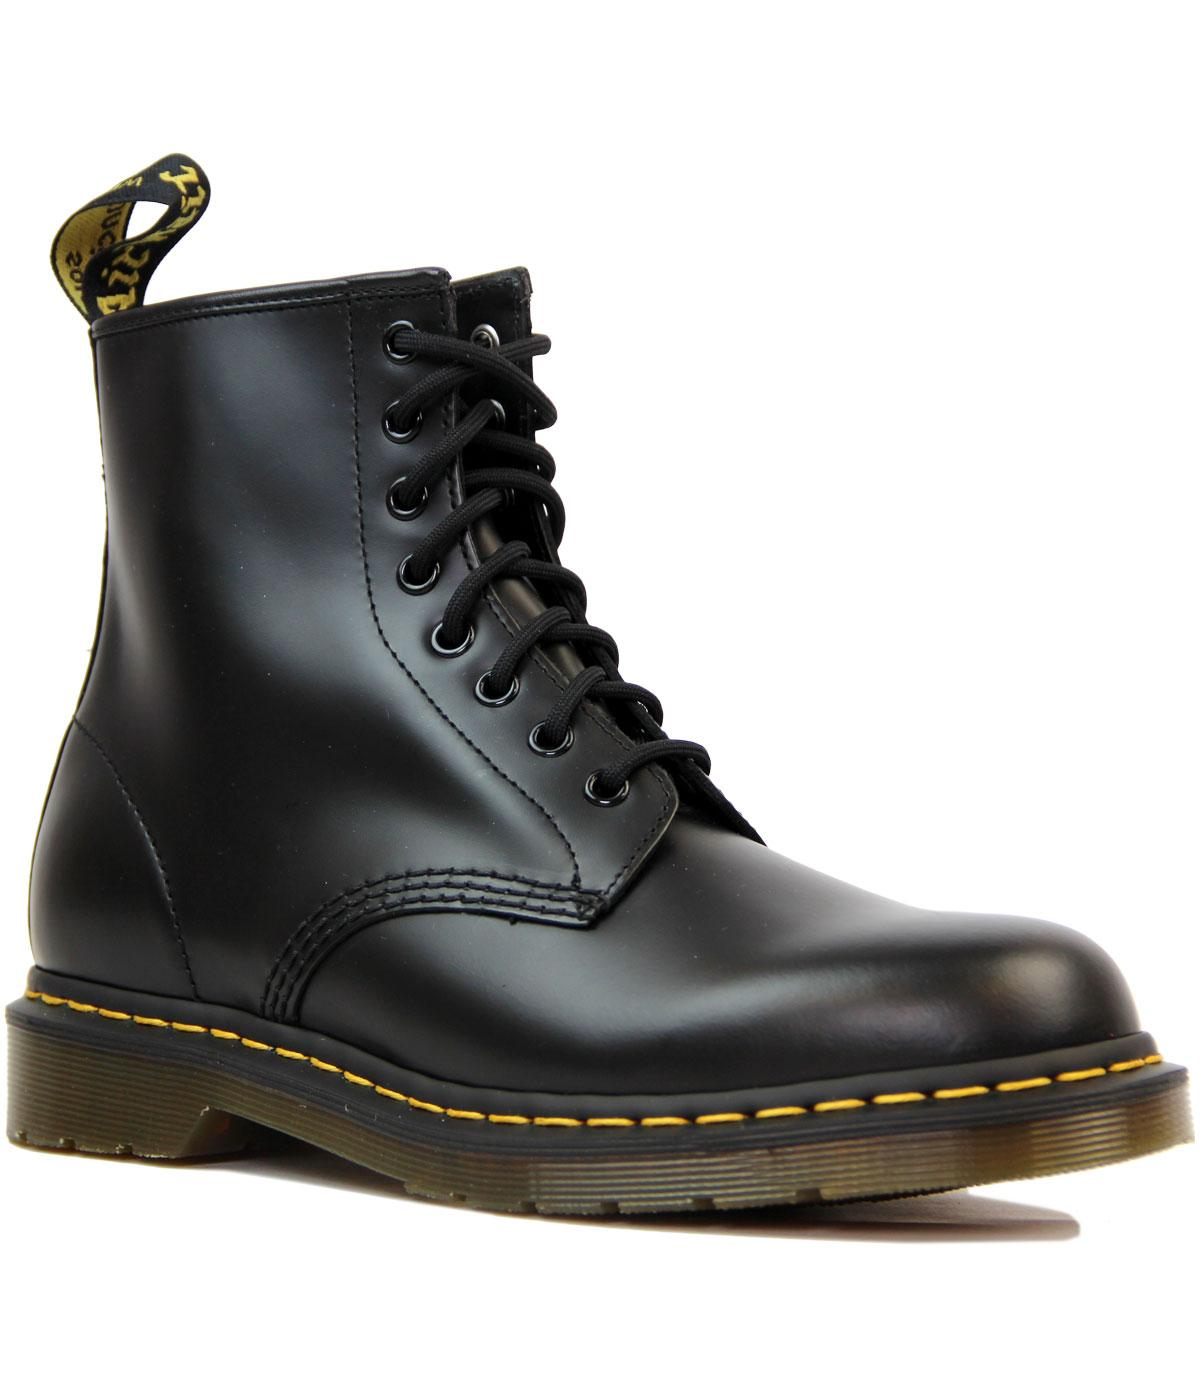 1460 DR MARTENS Mod Smooth Black Leather Boots